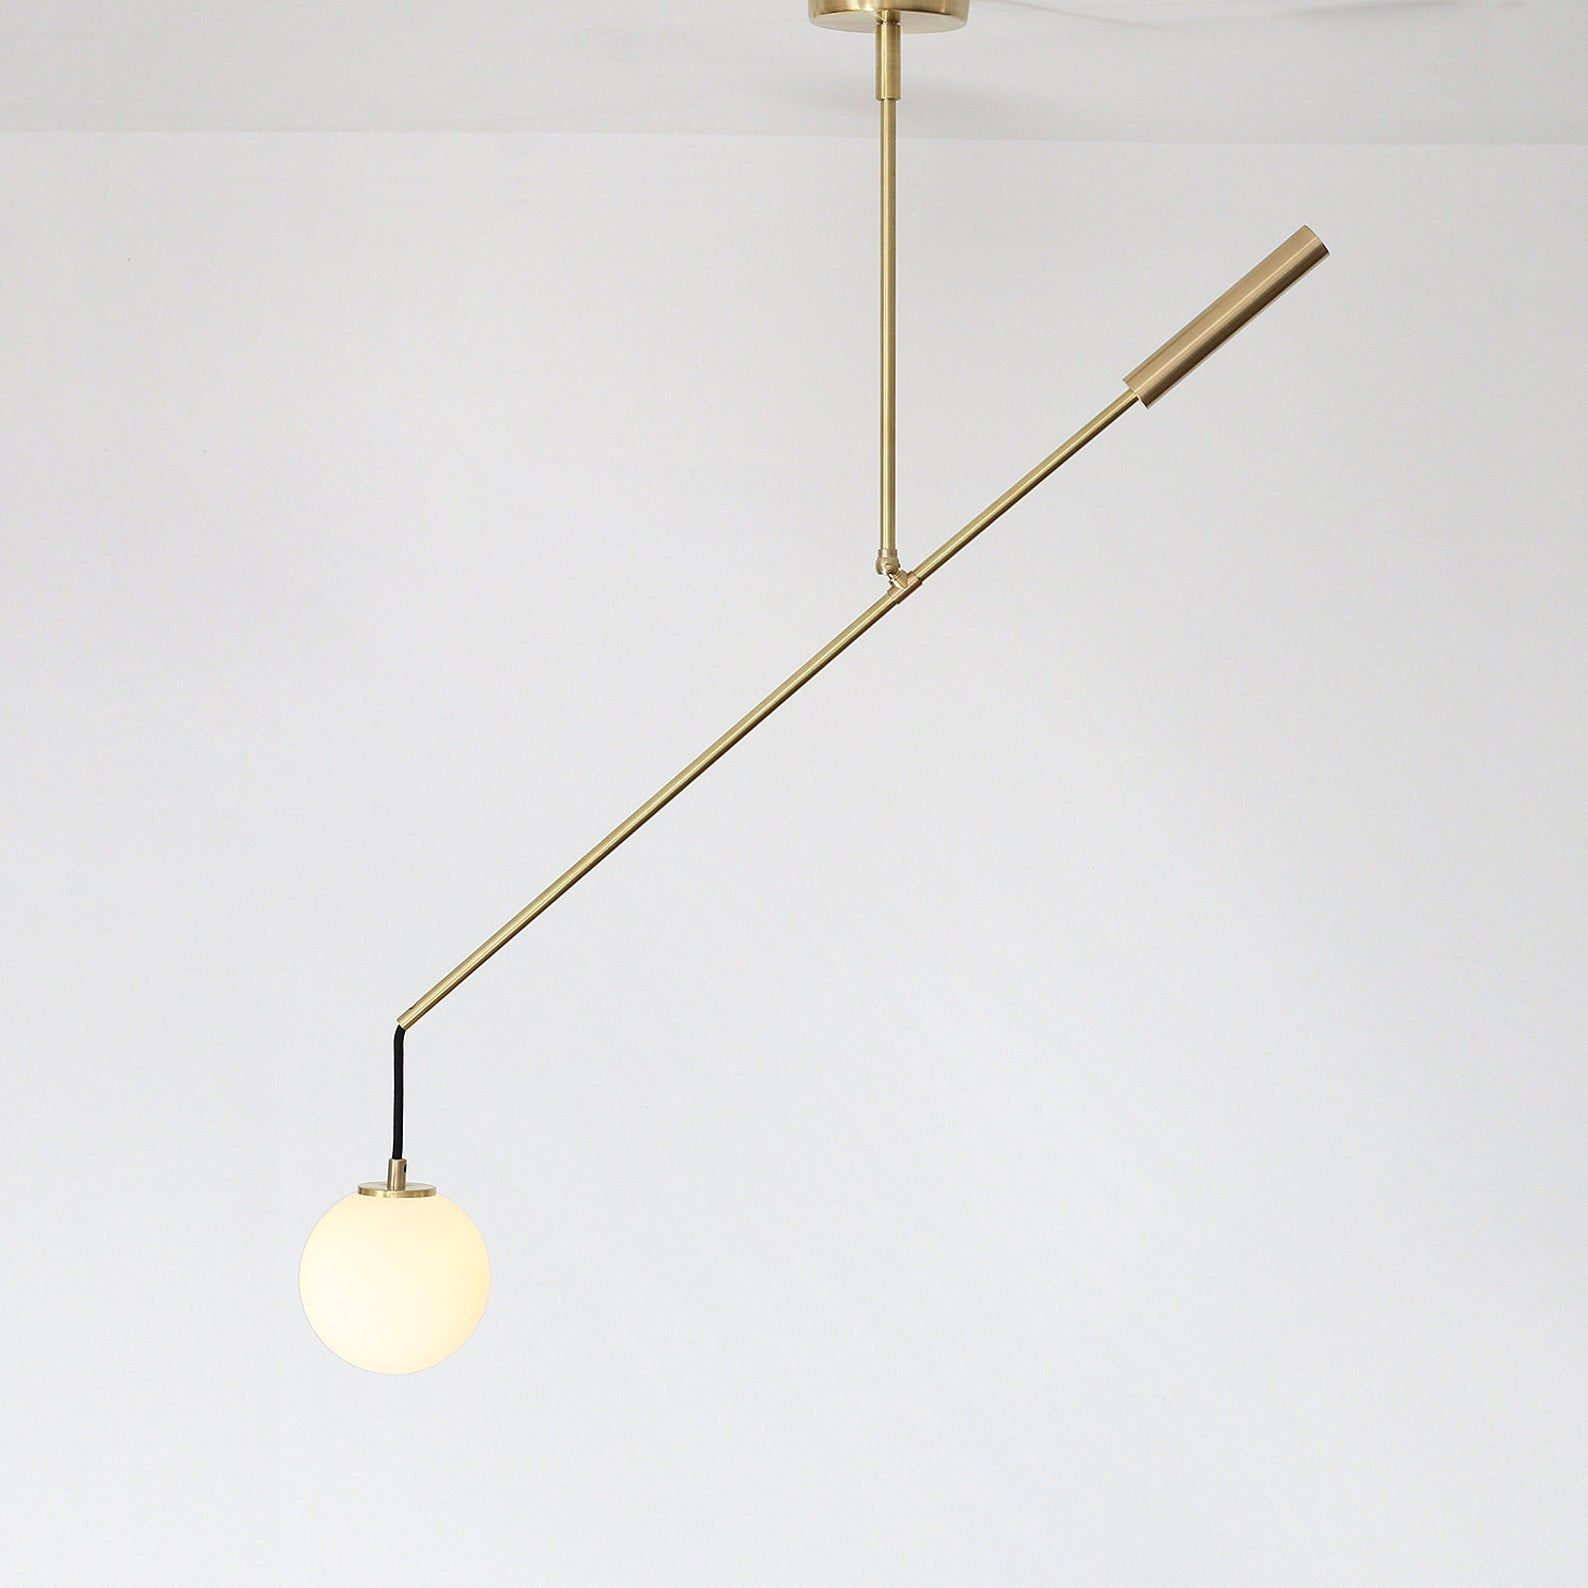 Modern Counterbalance Pendant Lamp Made Of Solid Brass Ceiling Lamp Balance Lamp Bl011 In 2020 Ceiling Lamp Pendant Lamp Lamp